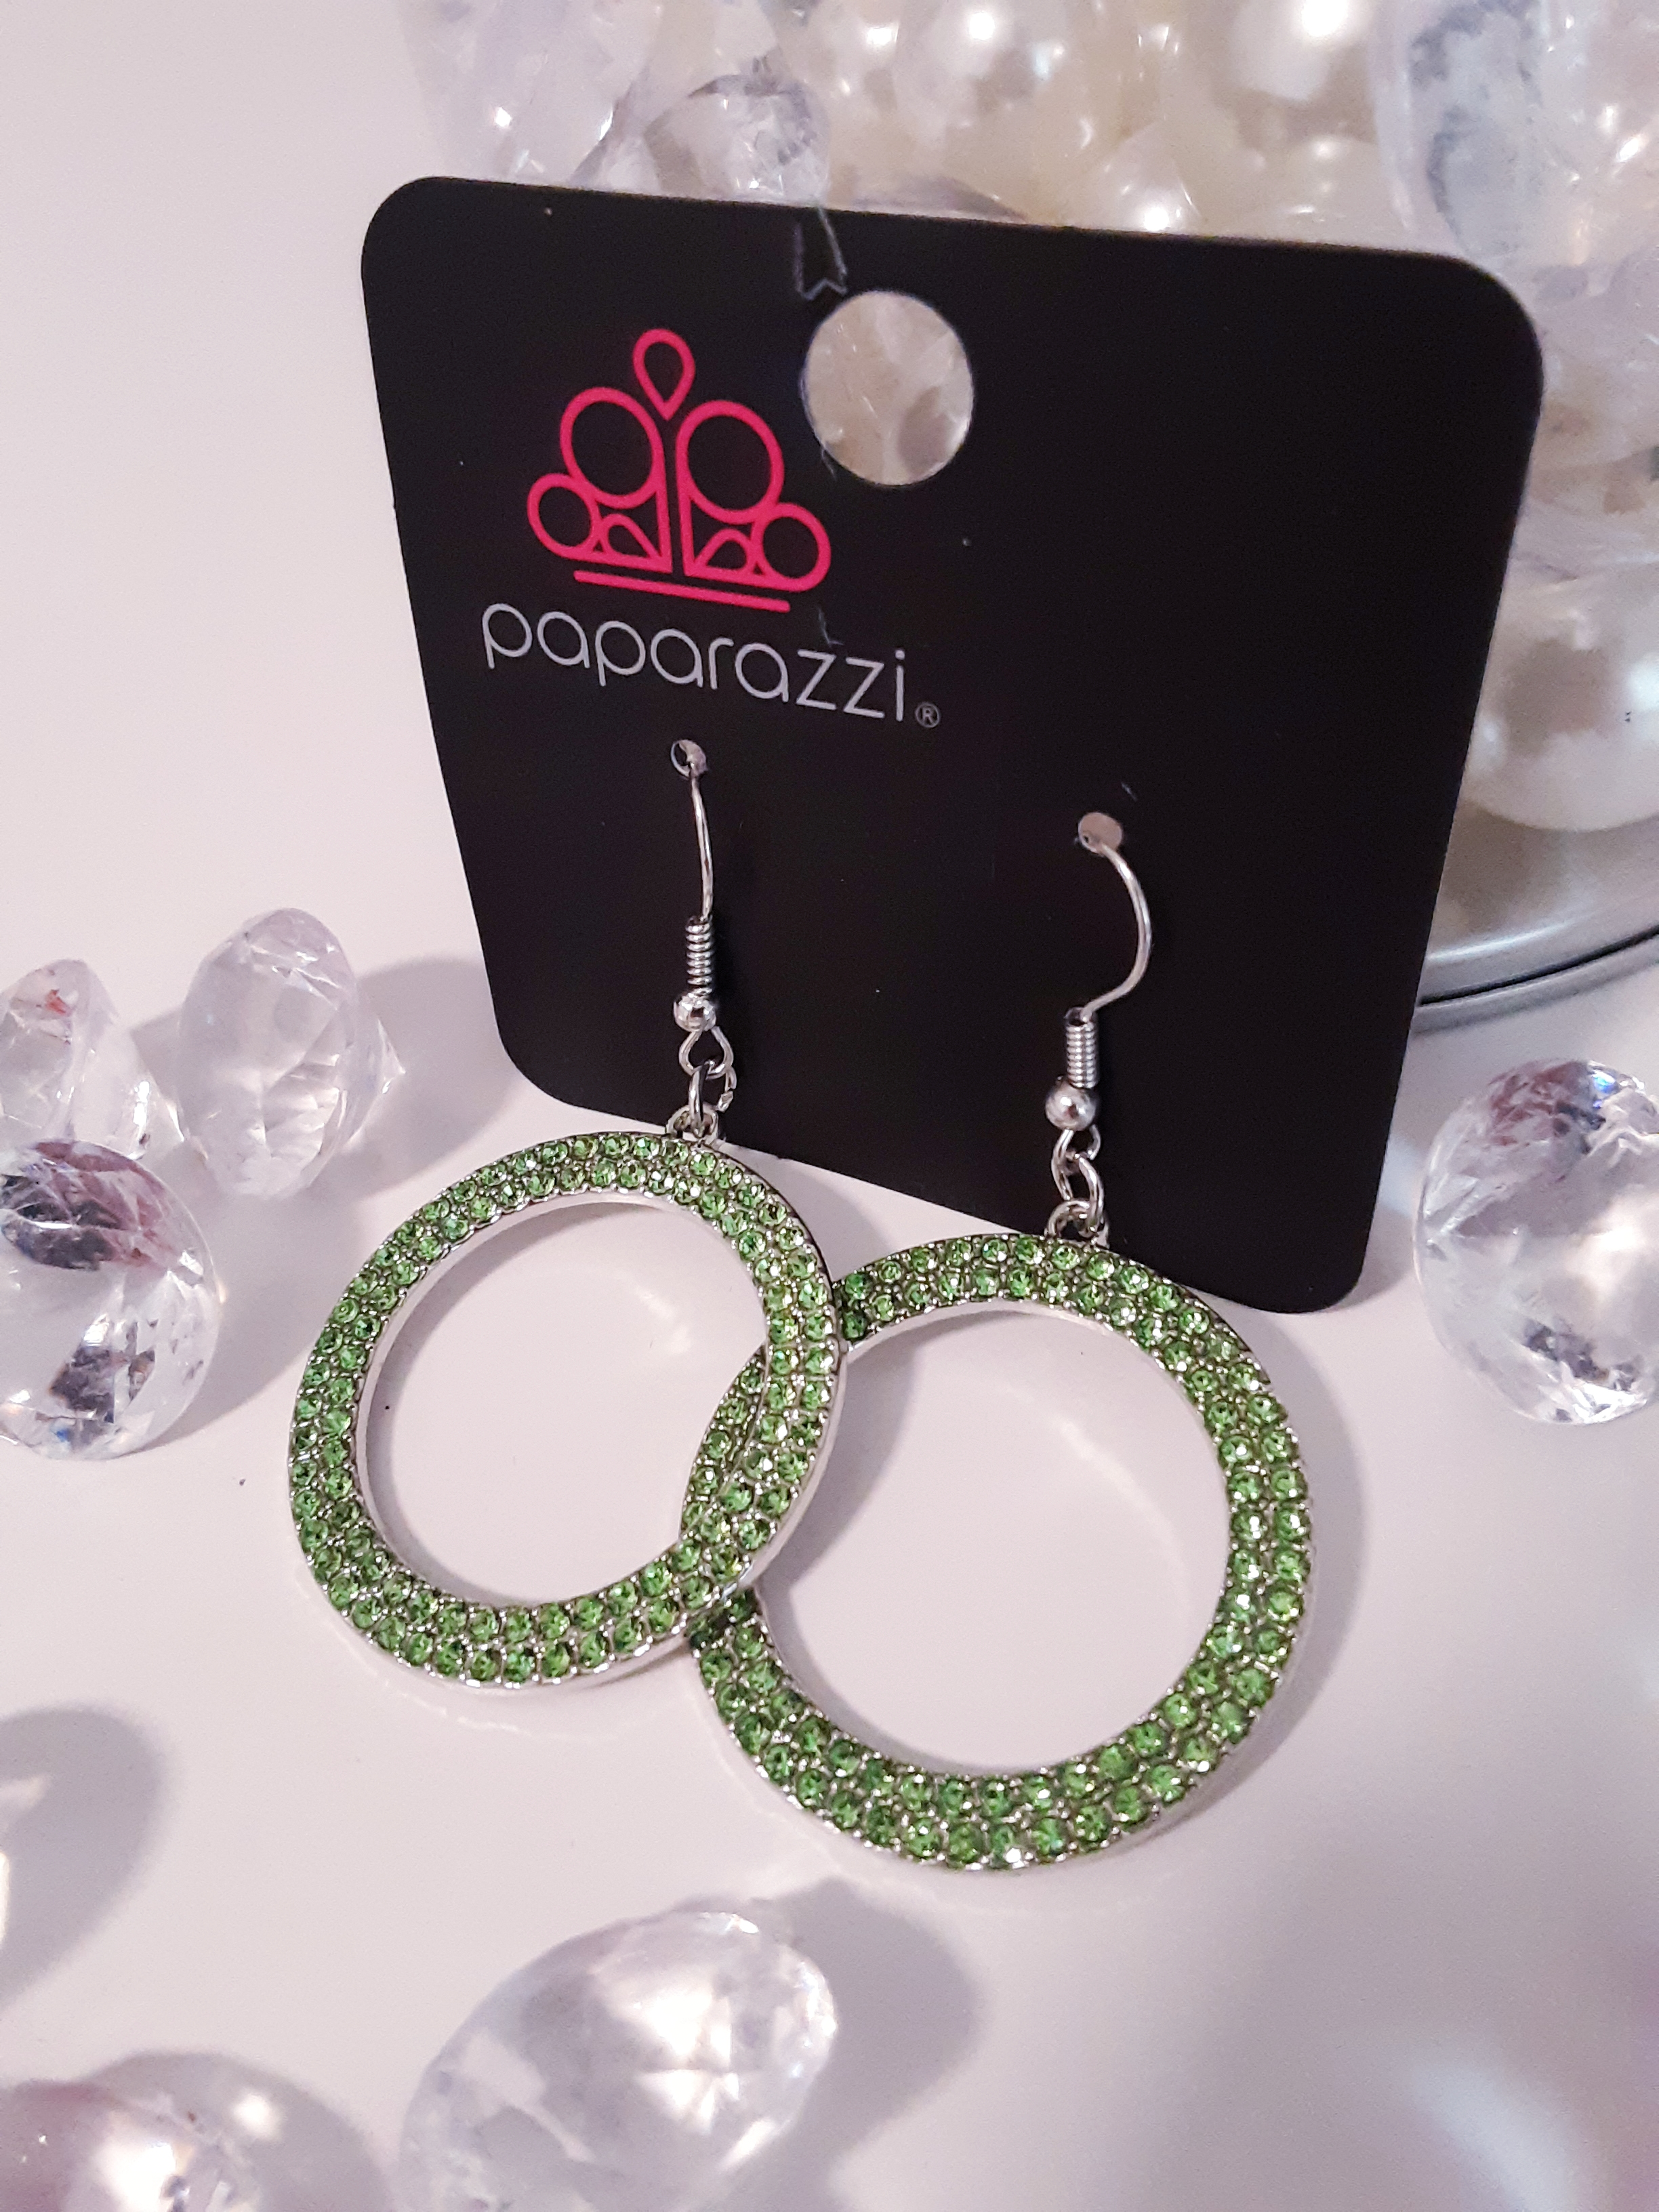 Green Rhinestone Earrings $5.00 Contact Jfay to Purchase